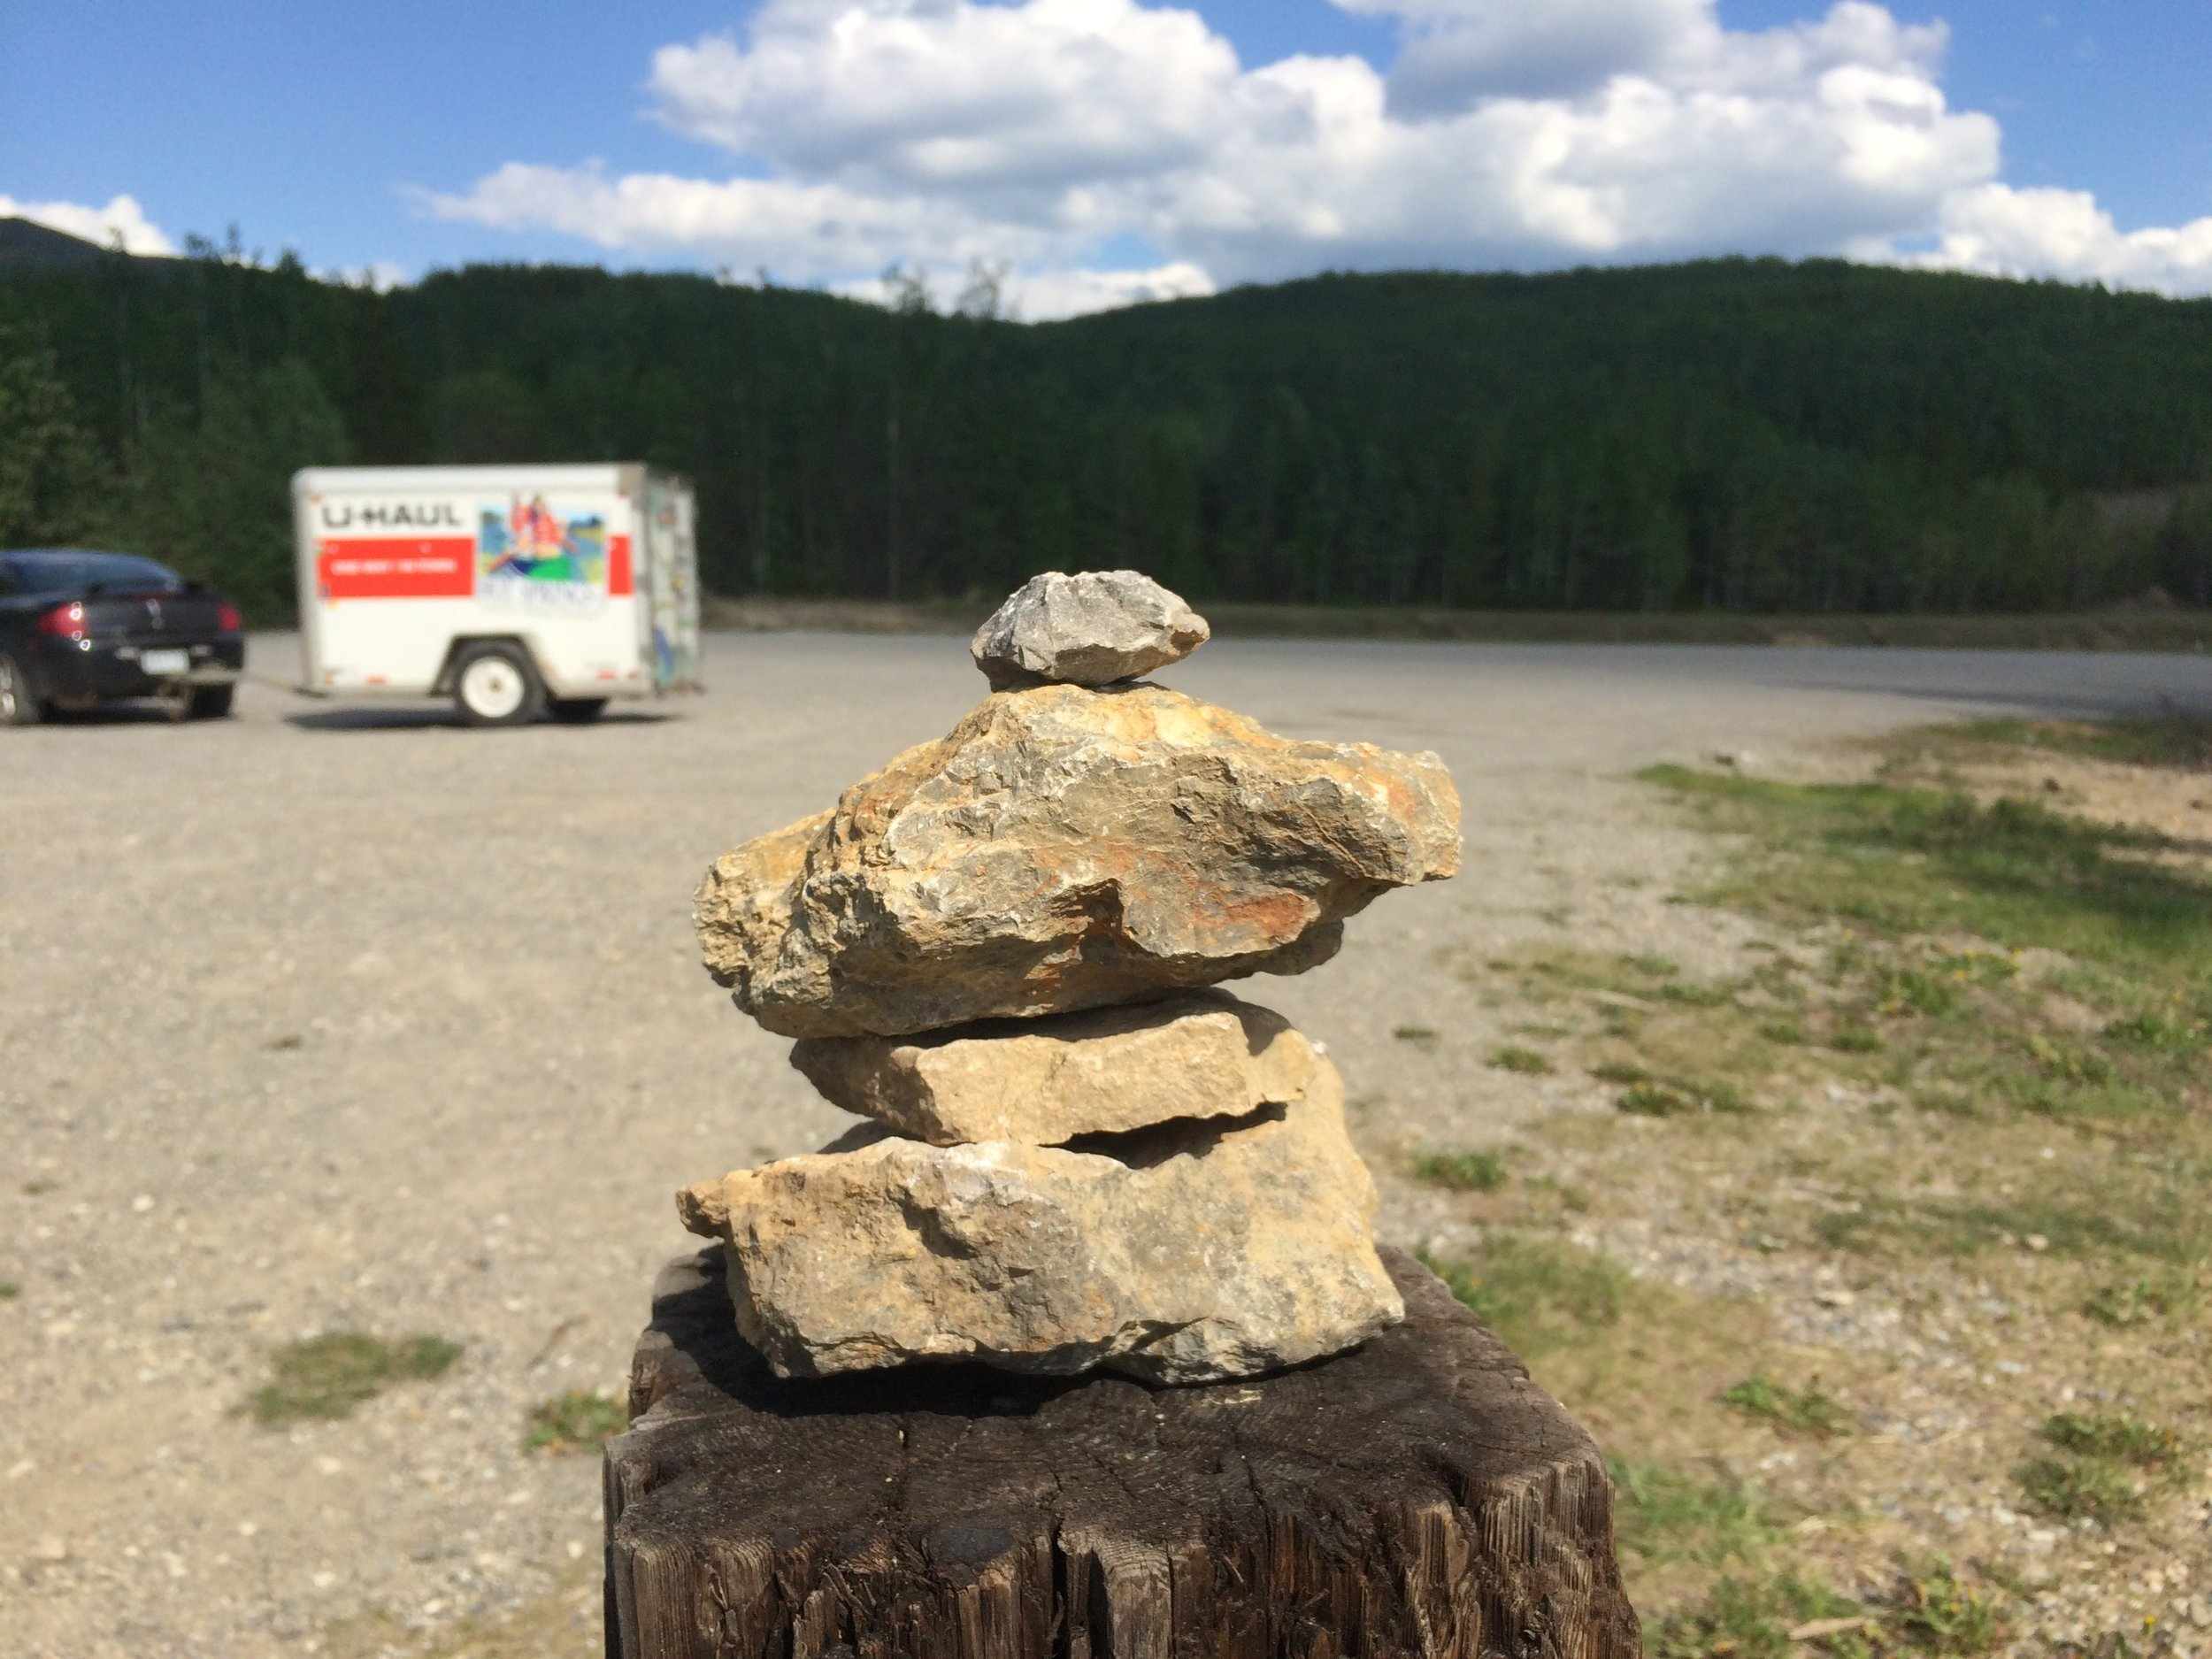 Inuksuks are found all over northern Canada. I saw them from Ontario to the Yukon.